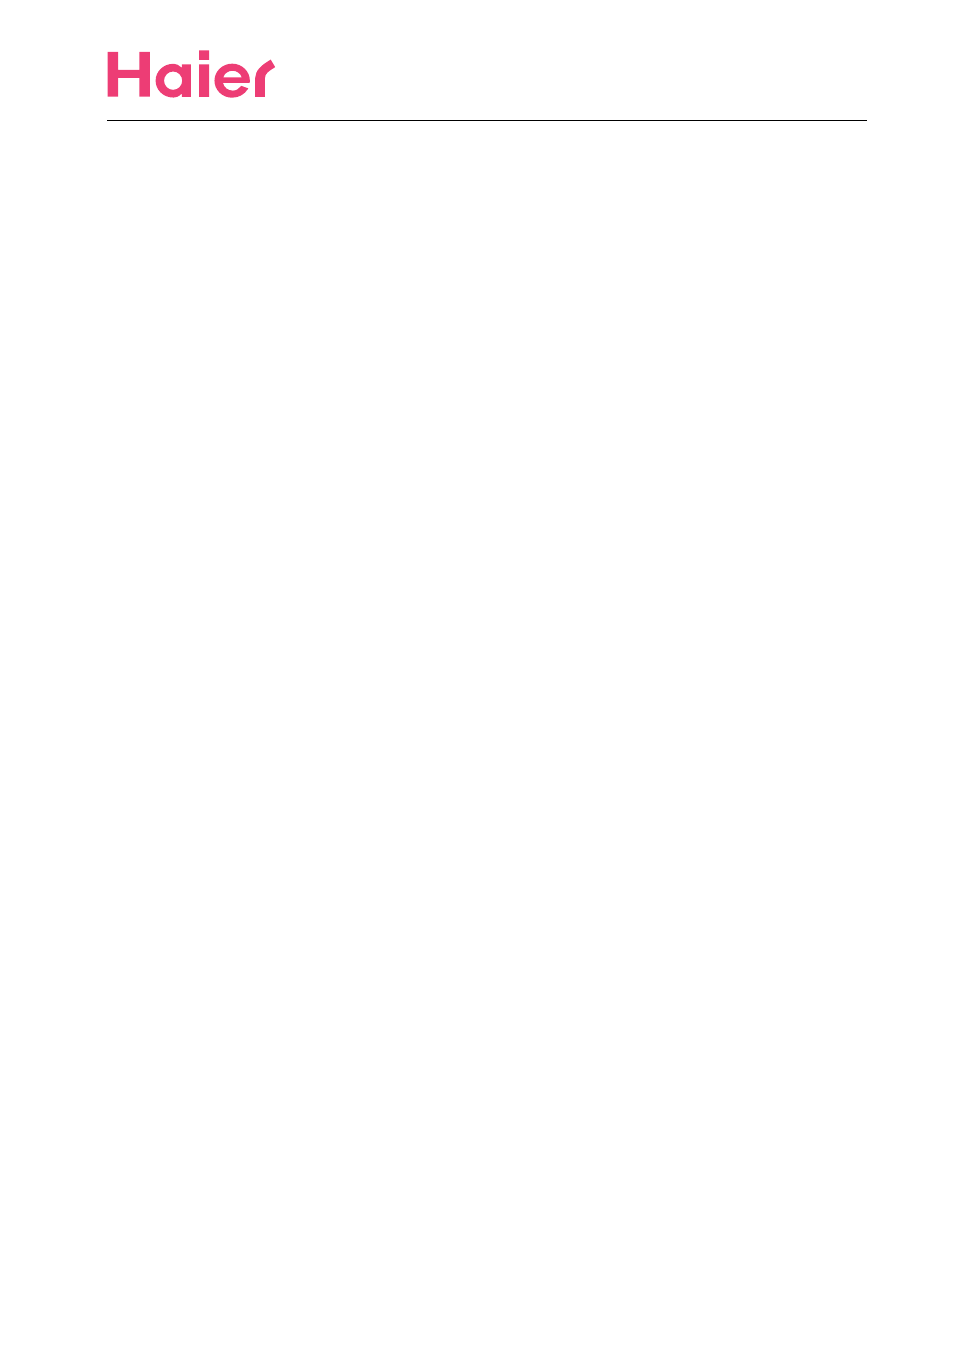 hight resolution of circuit and wiring diagram haier hd456 user manual page 14 18